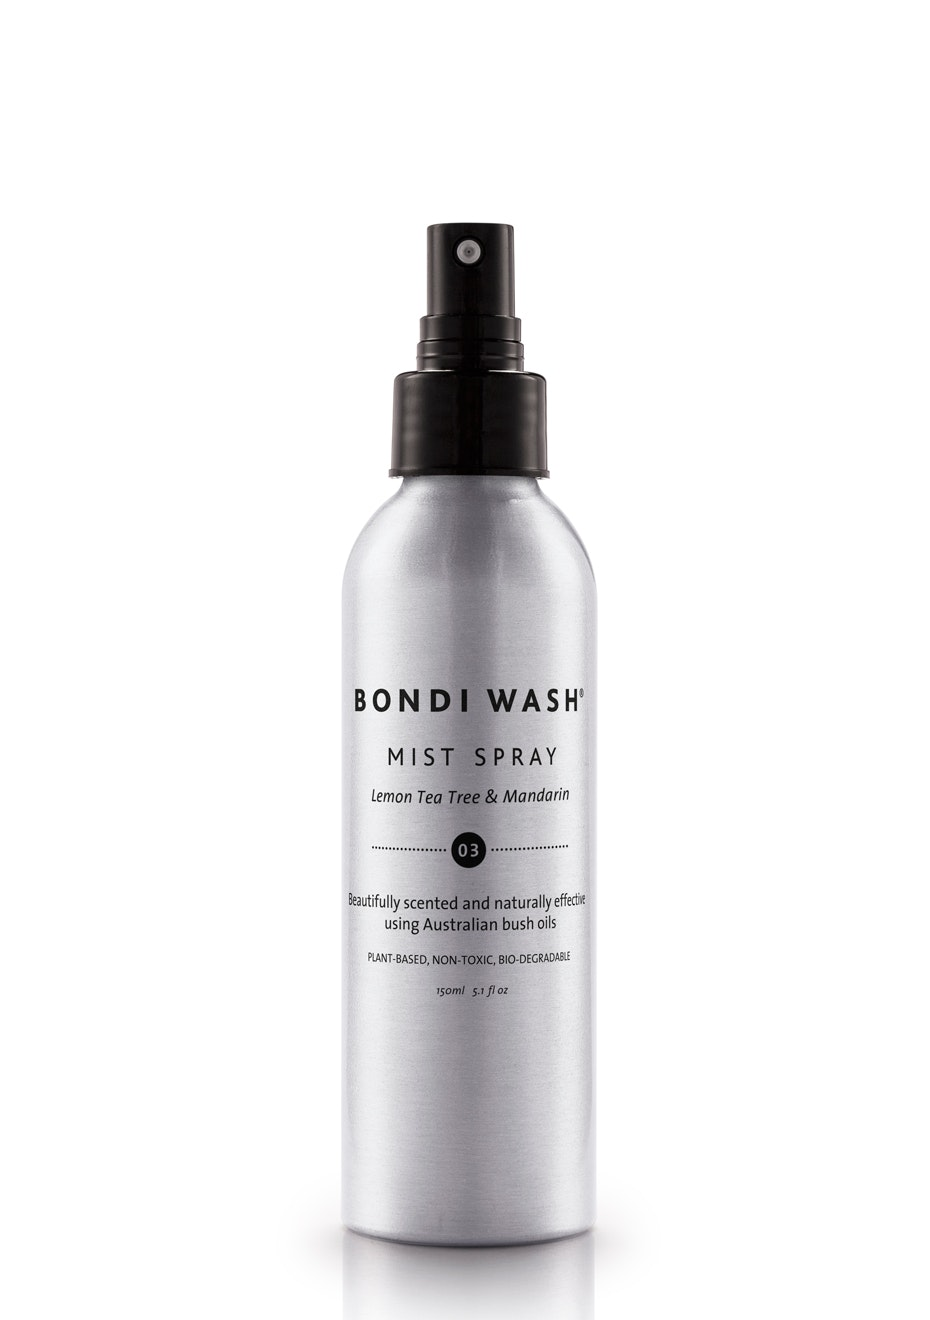 Bondi Wash - Mist Spray Lemon Tea Tree & Mandarin 150ml